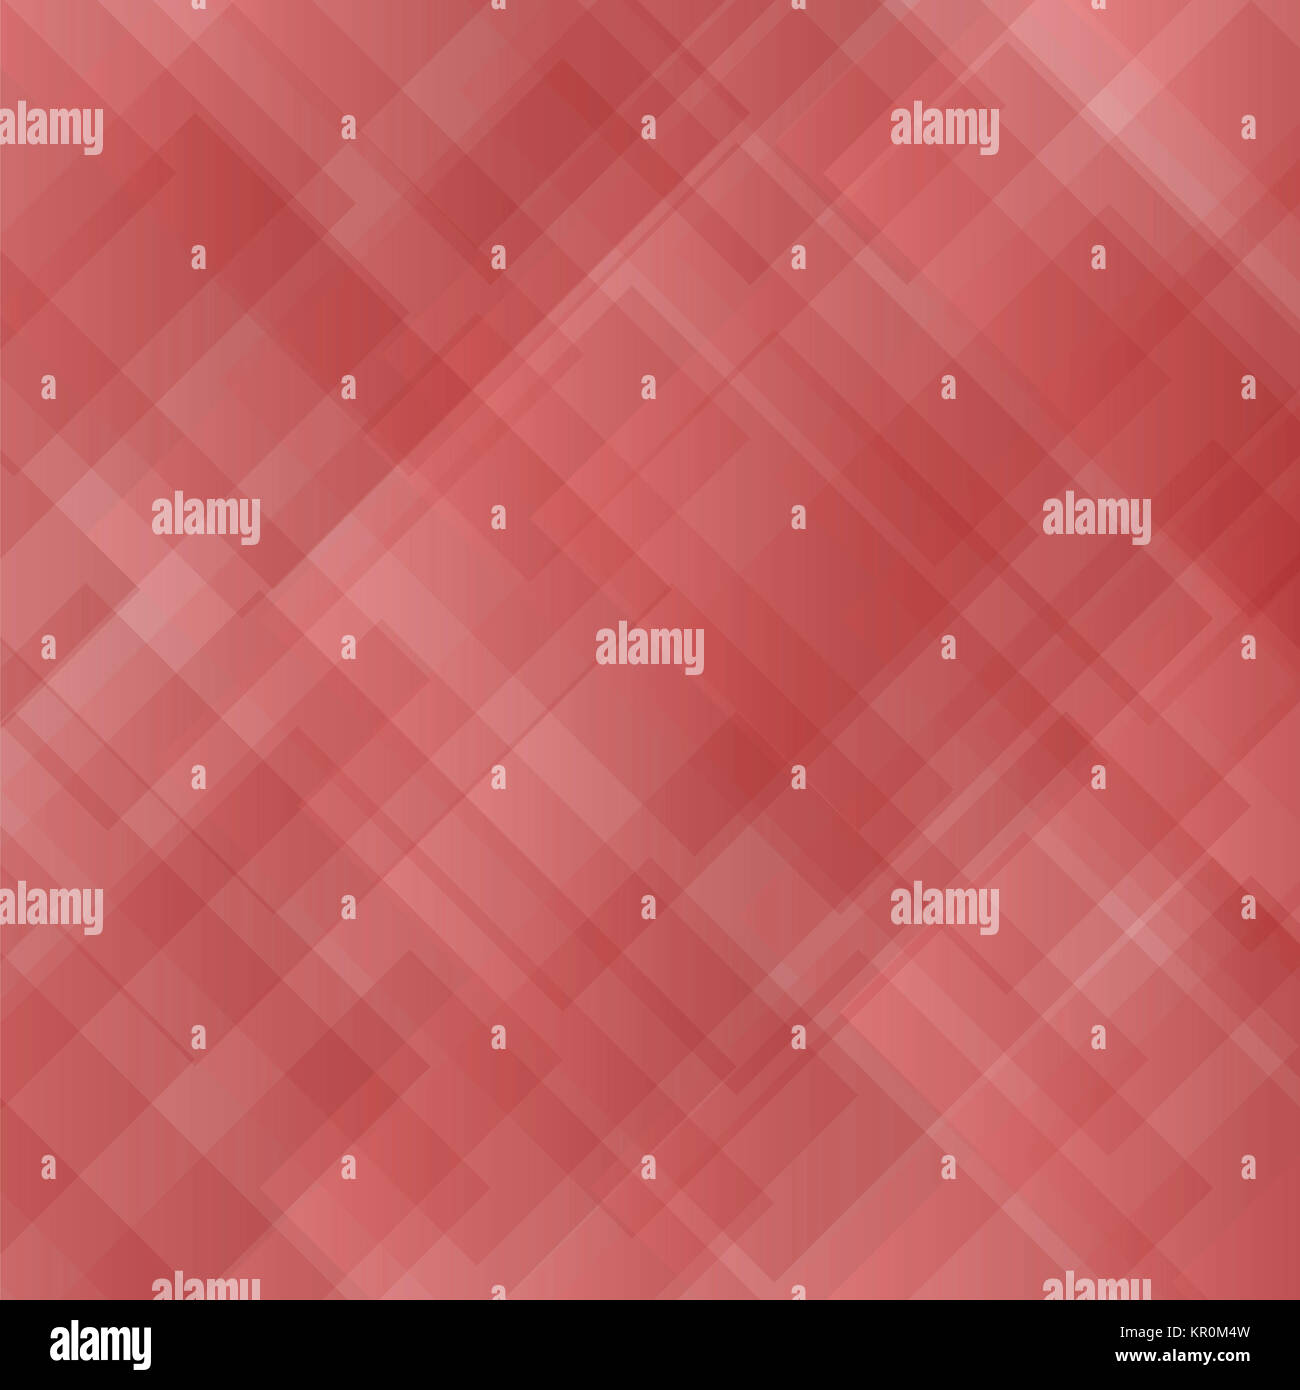 Abstract Pink Square Pattern. Stock Photo